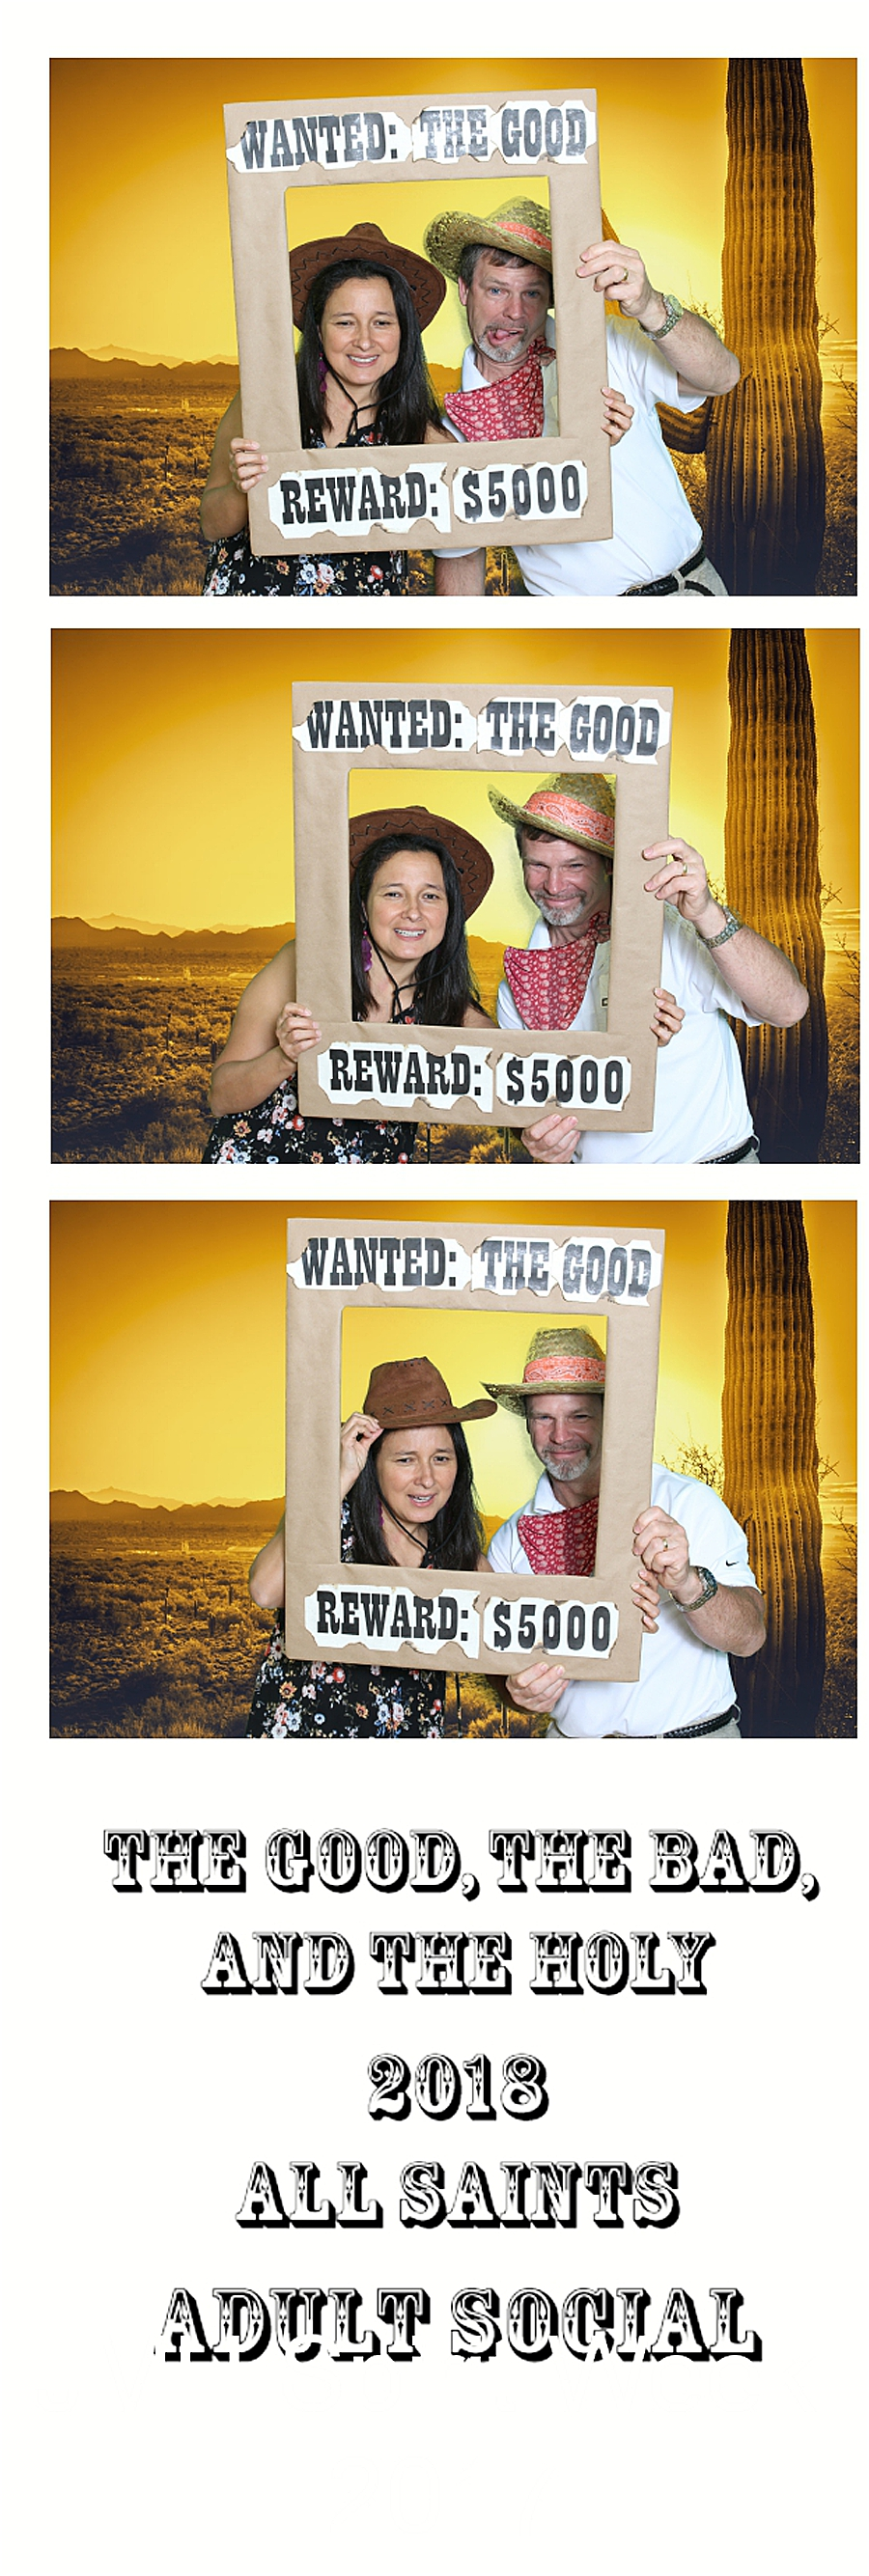 Knoxville Photo Booth_1305.jpg